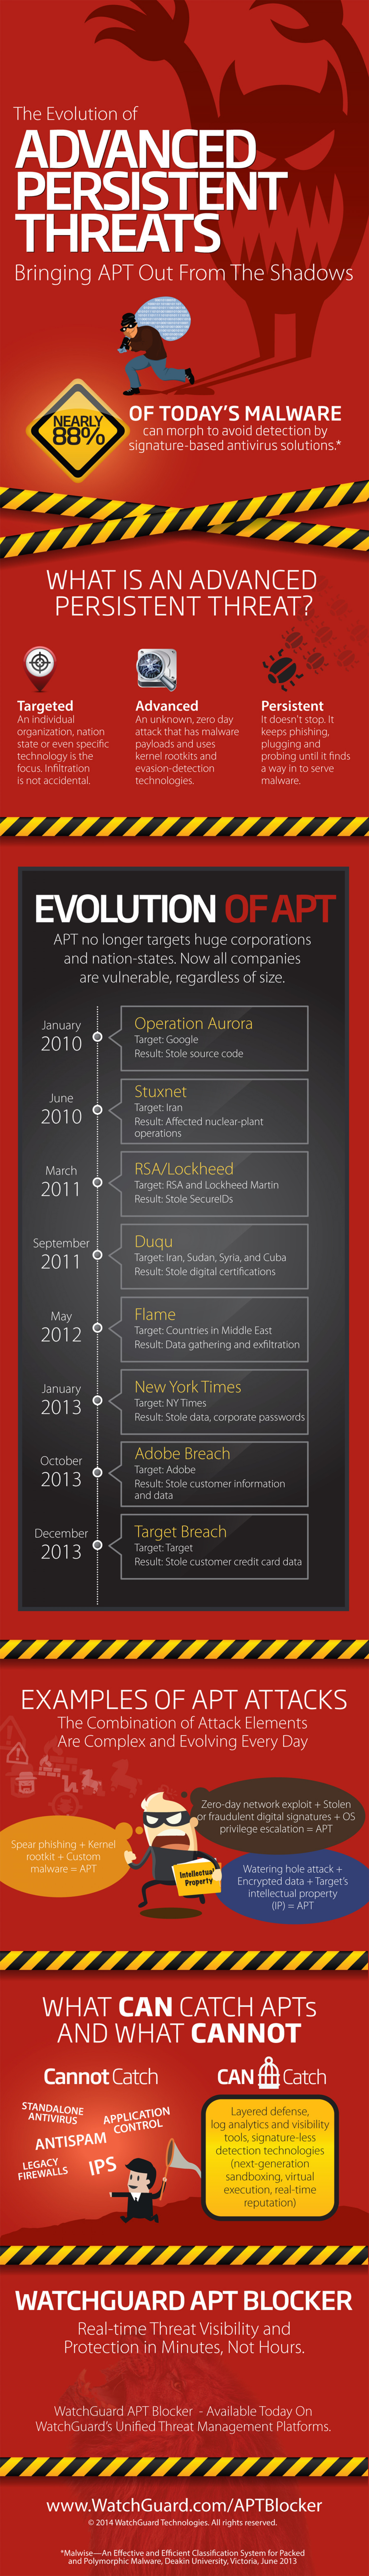 The Evolution of Advanced Persistent Threats Infographic